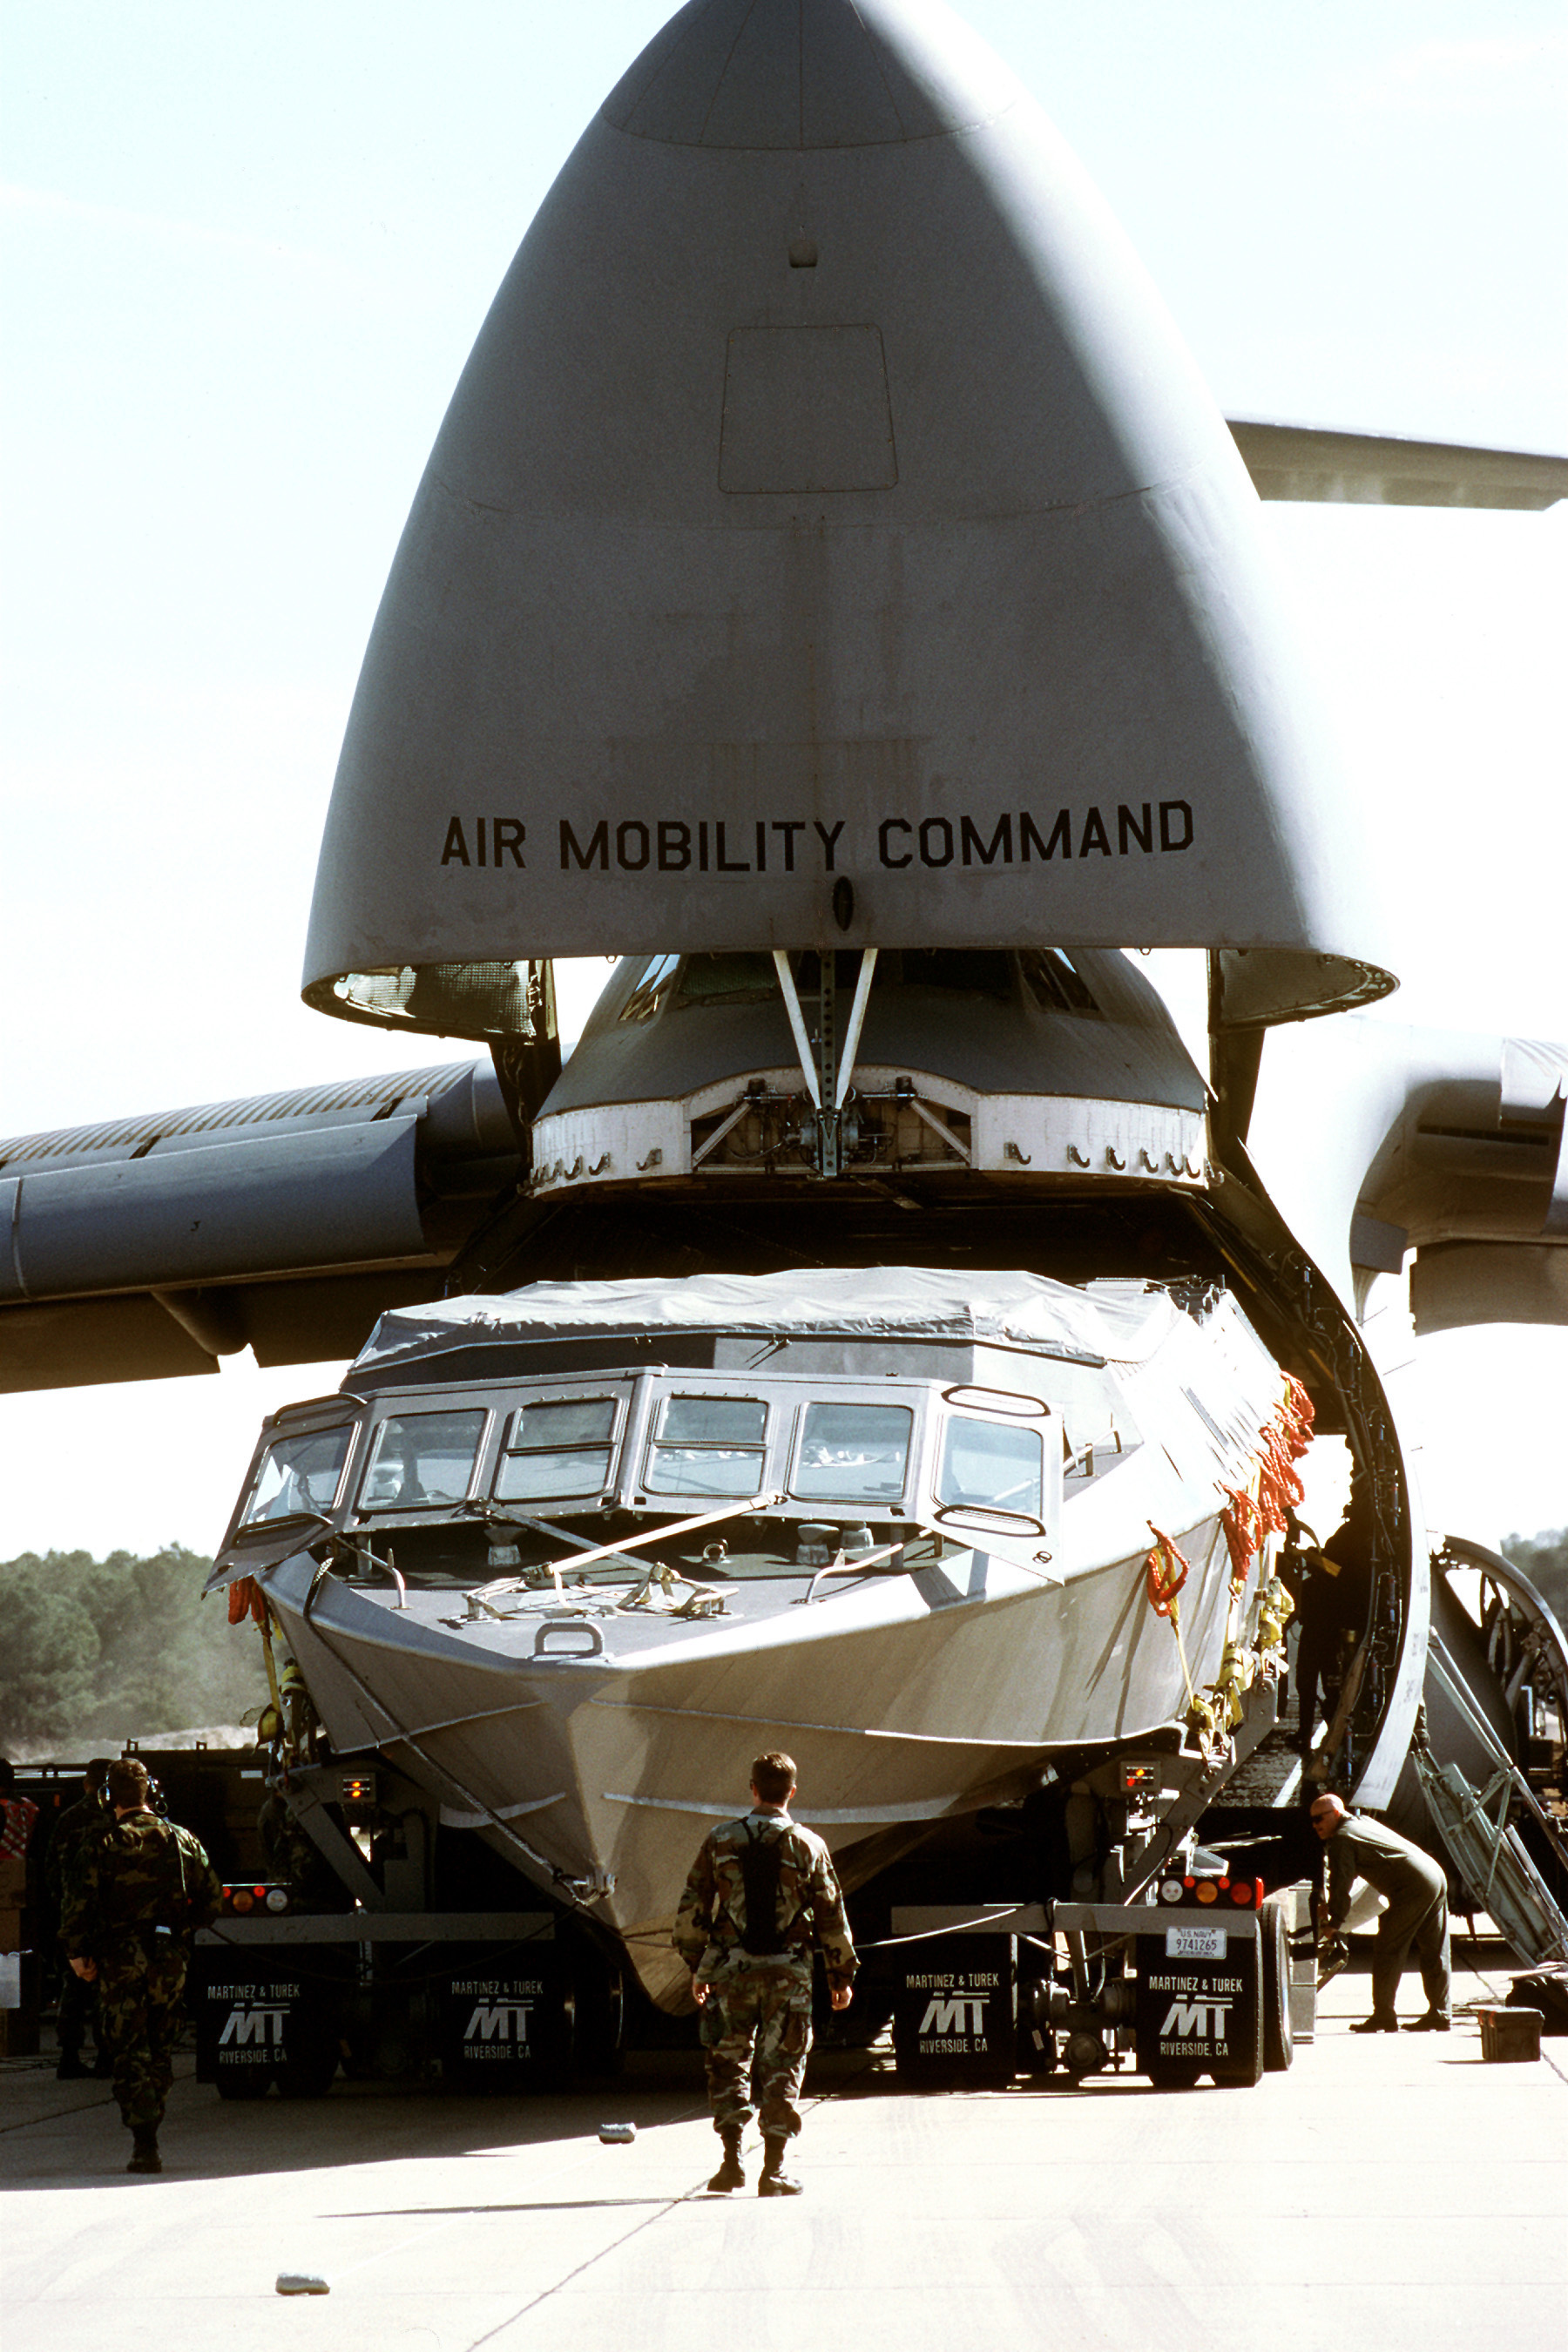 sd of helicopters with File Us Air Force Df Sd 01 08666 Mark V Special Operations Craft Loaded Into A C 5 Galaxy Aircraft From The 349th Air Mobility Wing  Travis Air Force Base on File Two USMC AH 1W provides close air support during Operation IRAQI FREEDOM likewise Sdkfz186 Jagdtiger Porsche Production Type Wzimmerit P 16094 together with Back To Basics Aviation Photography Shot From 1000 Feet In The Air in addition German Medical Troops Wkubelwagen P 2414 besides S3.